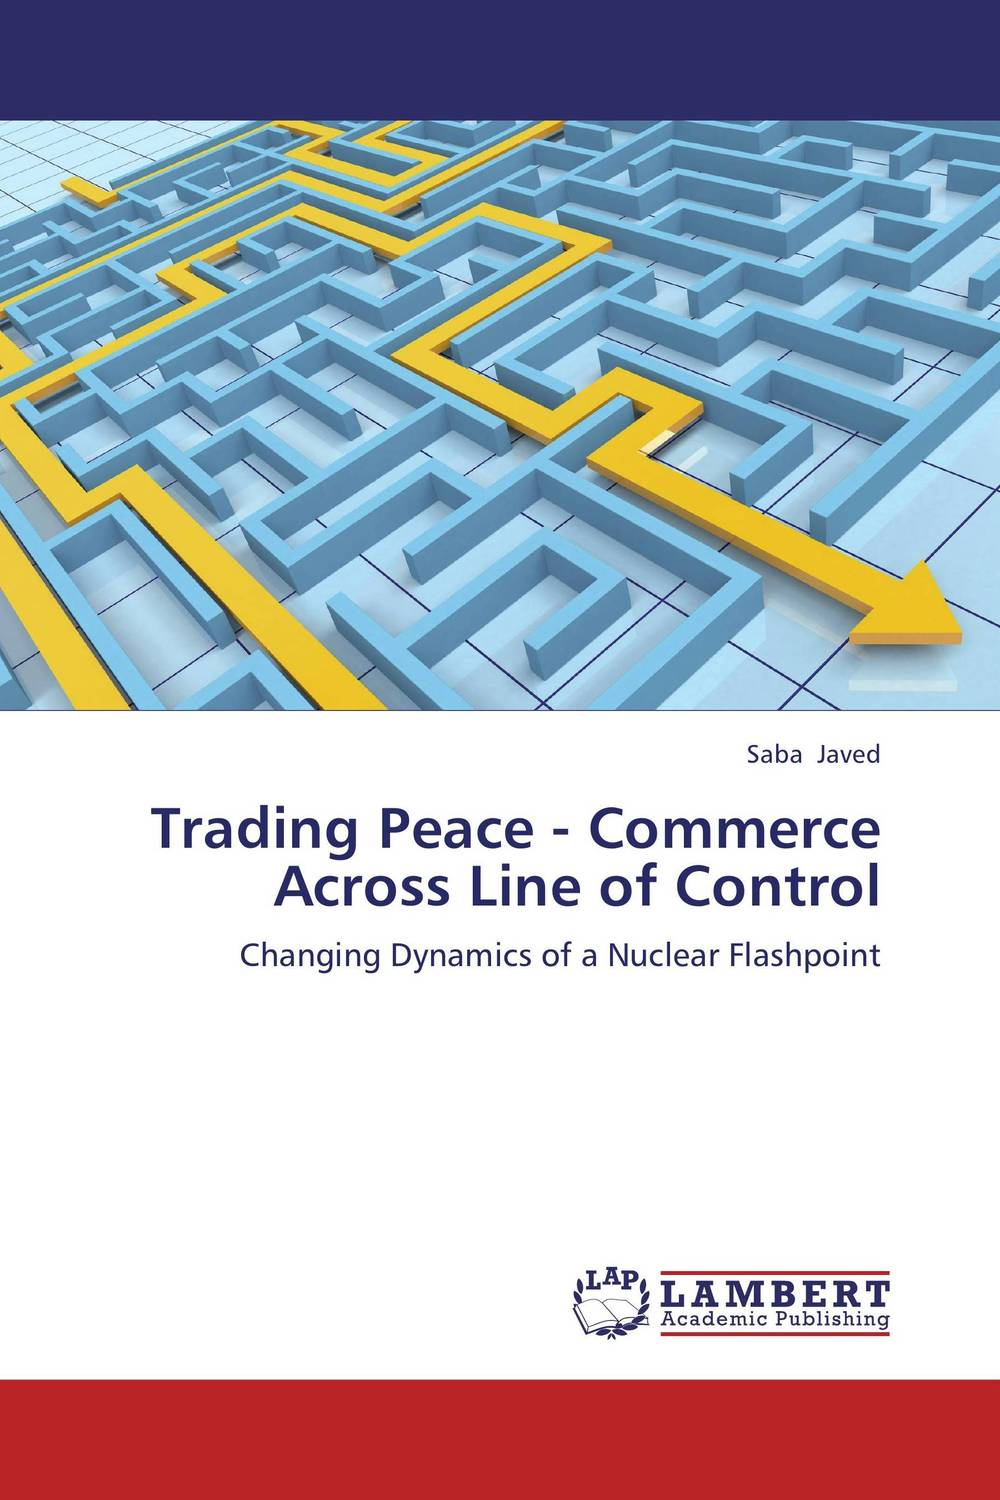 Trading Peace - Commerce Across Line of Control peter nash effective product control controlling for trading desks